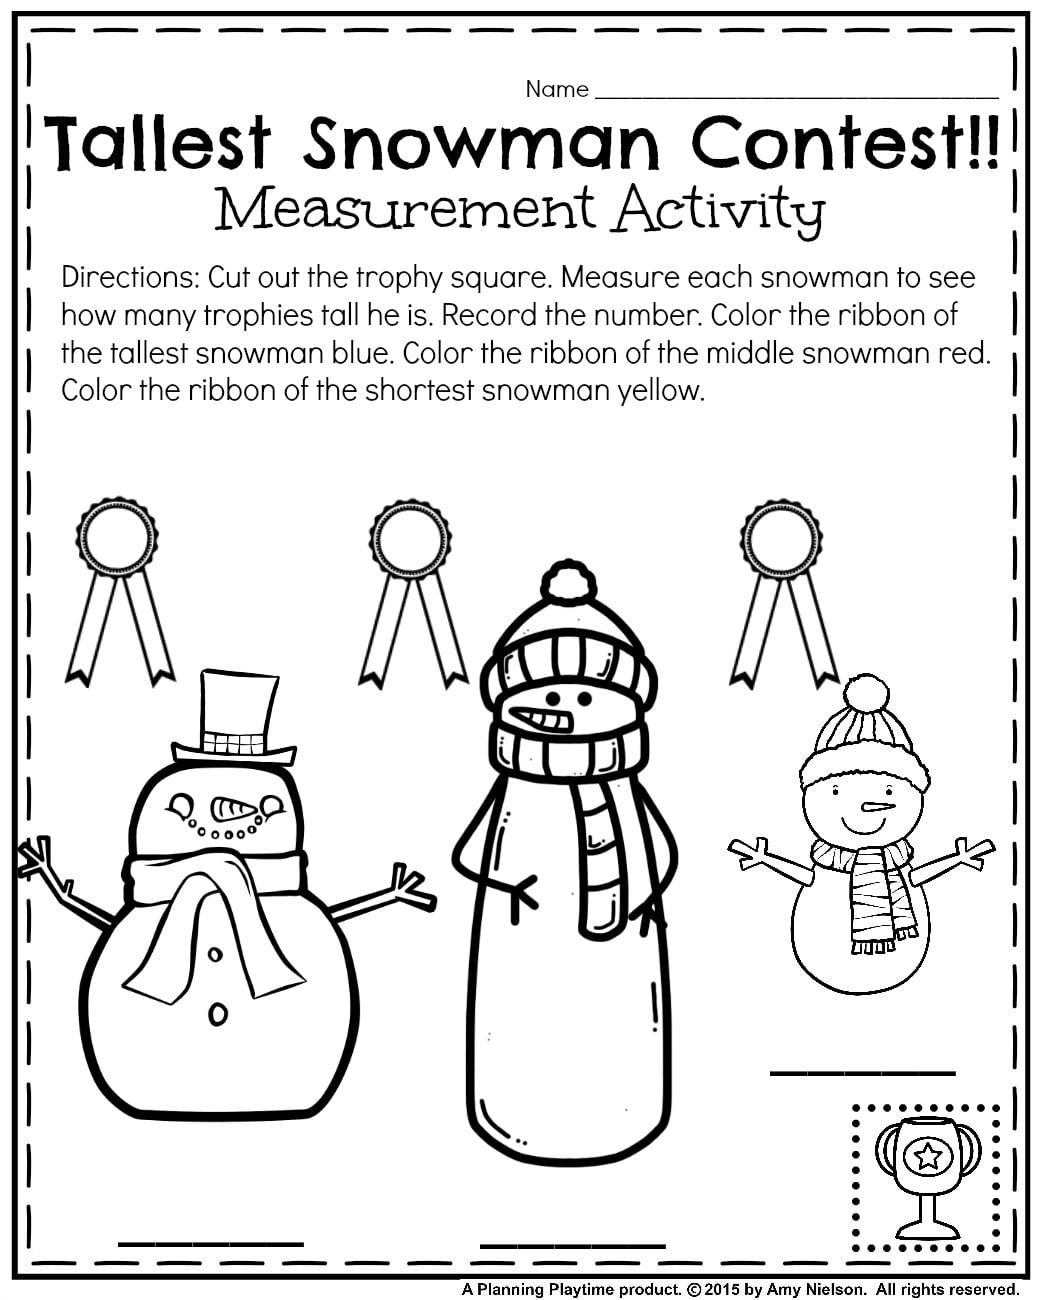 worksheet Measurement Worksheets For Kindergarten january kindergarten worksheets measurement worksheet tallest snowman contest